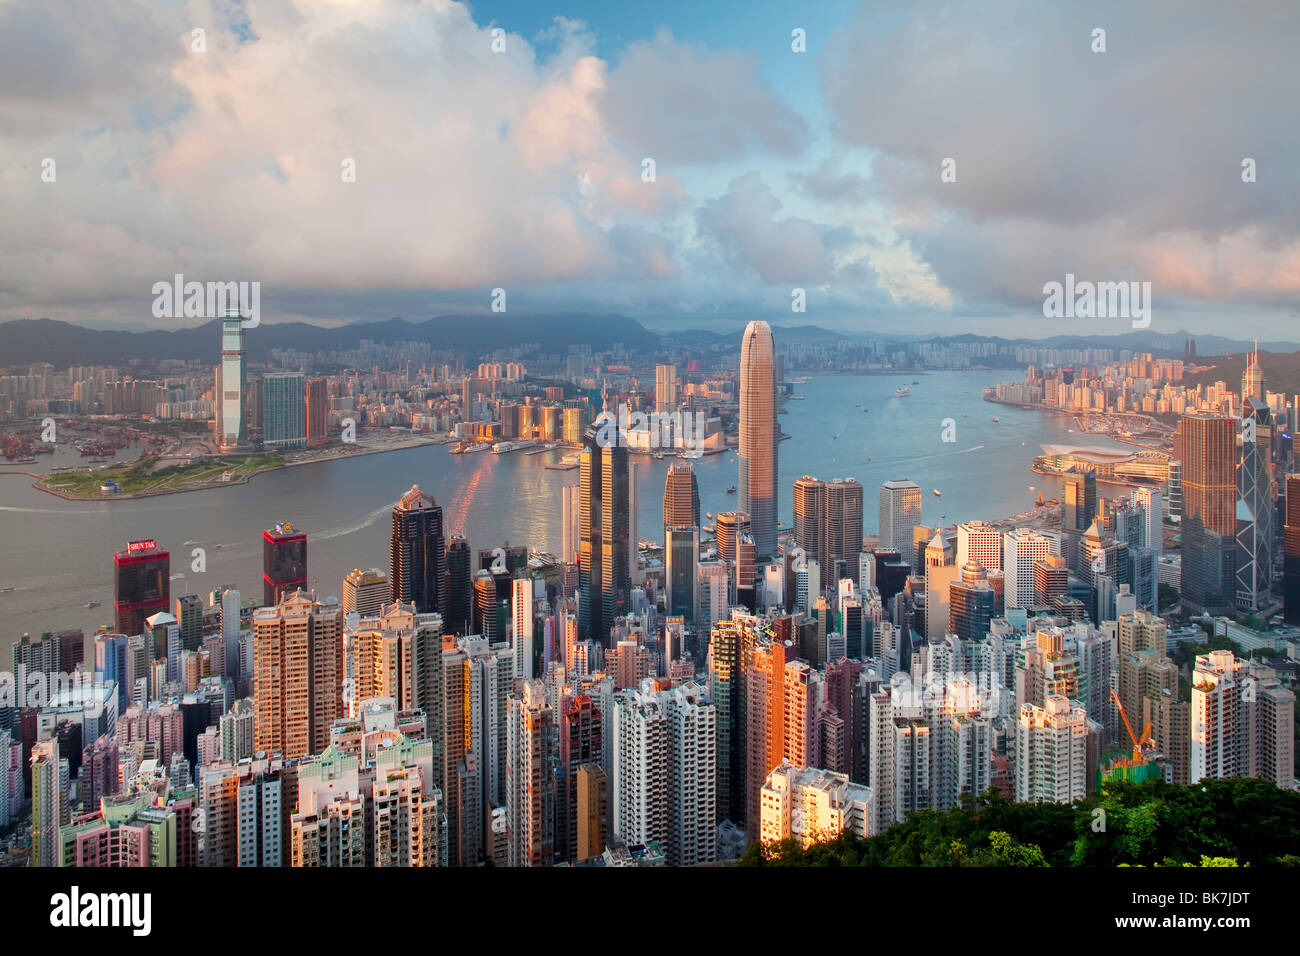 City skyline and Victoria Harbour viewed from Victoria Peak, Hong Kong, China, Asia - Stock Image